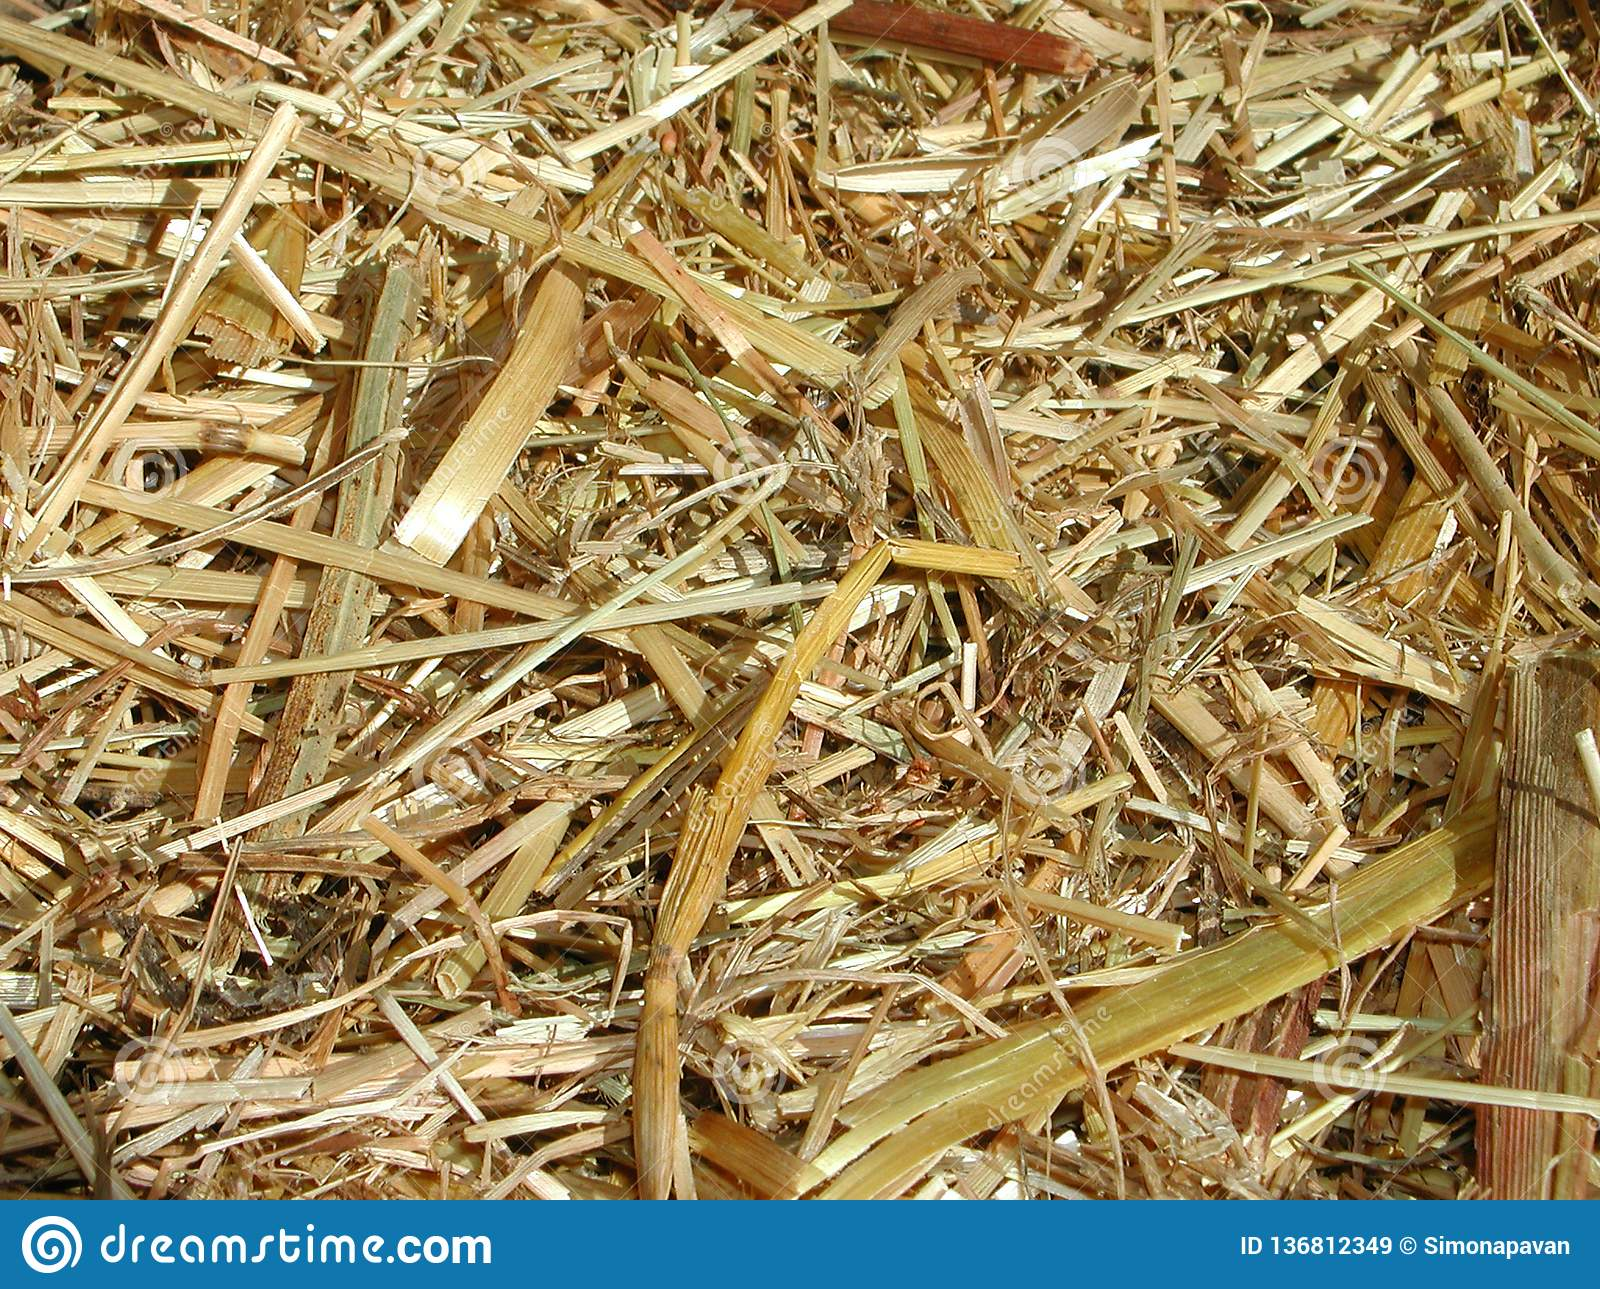 Dried straw close up